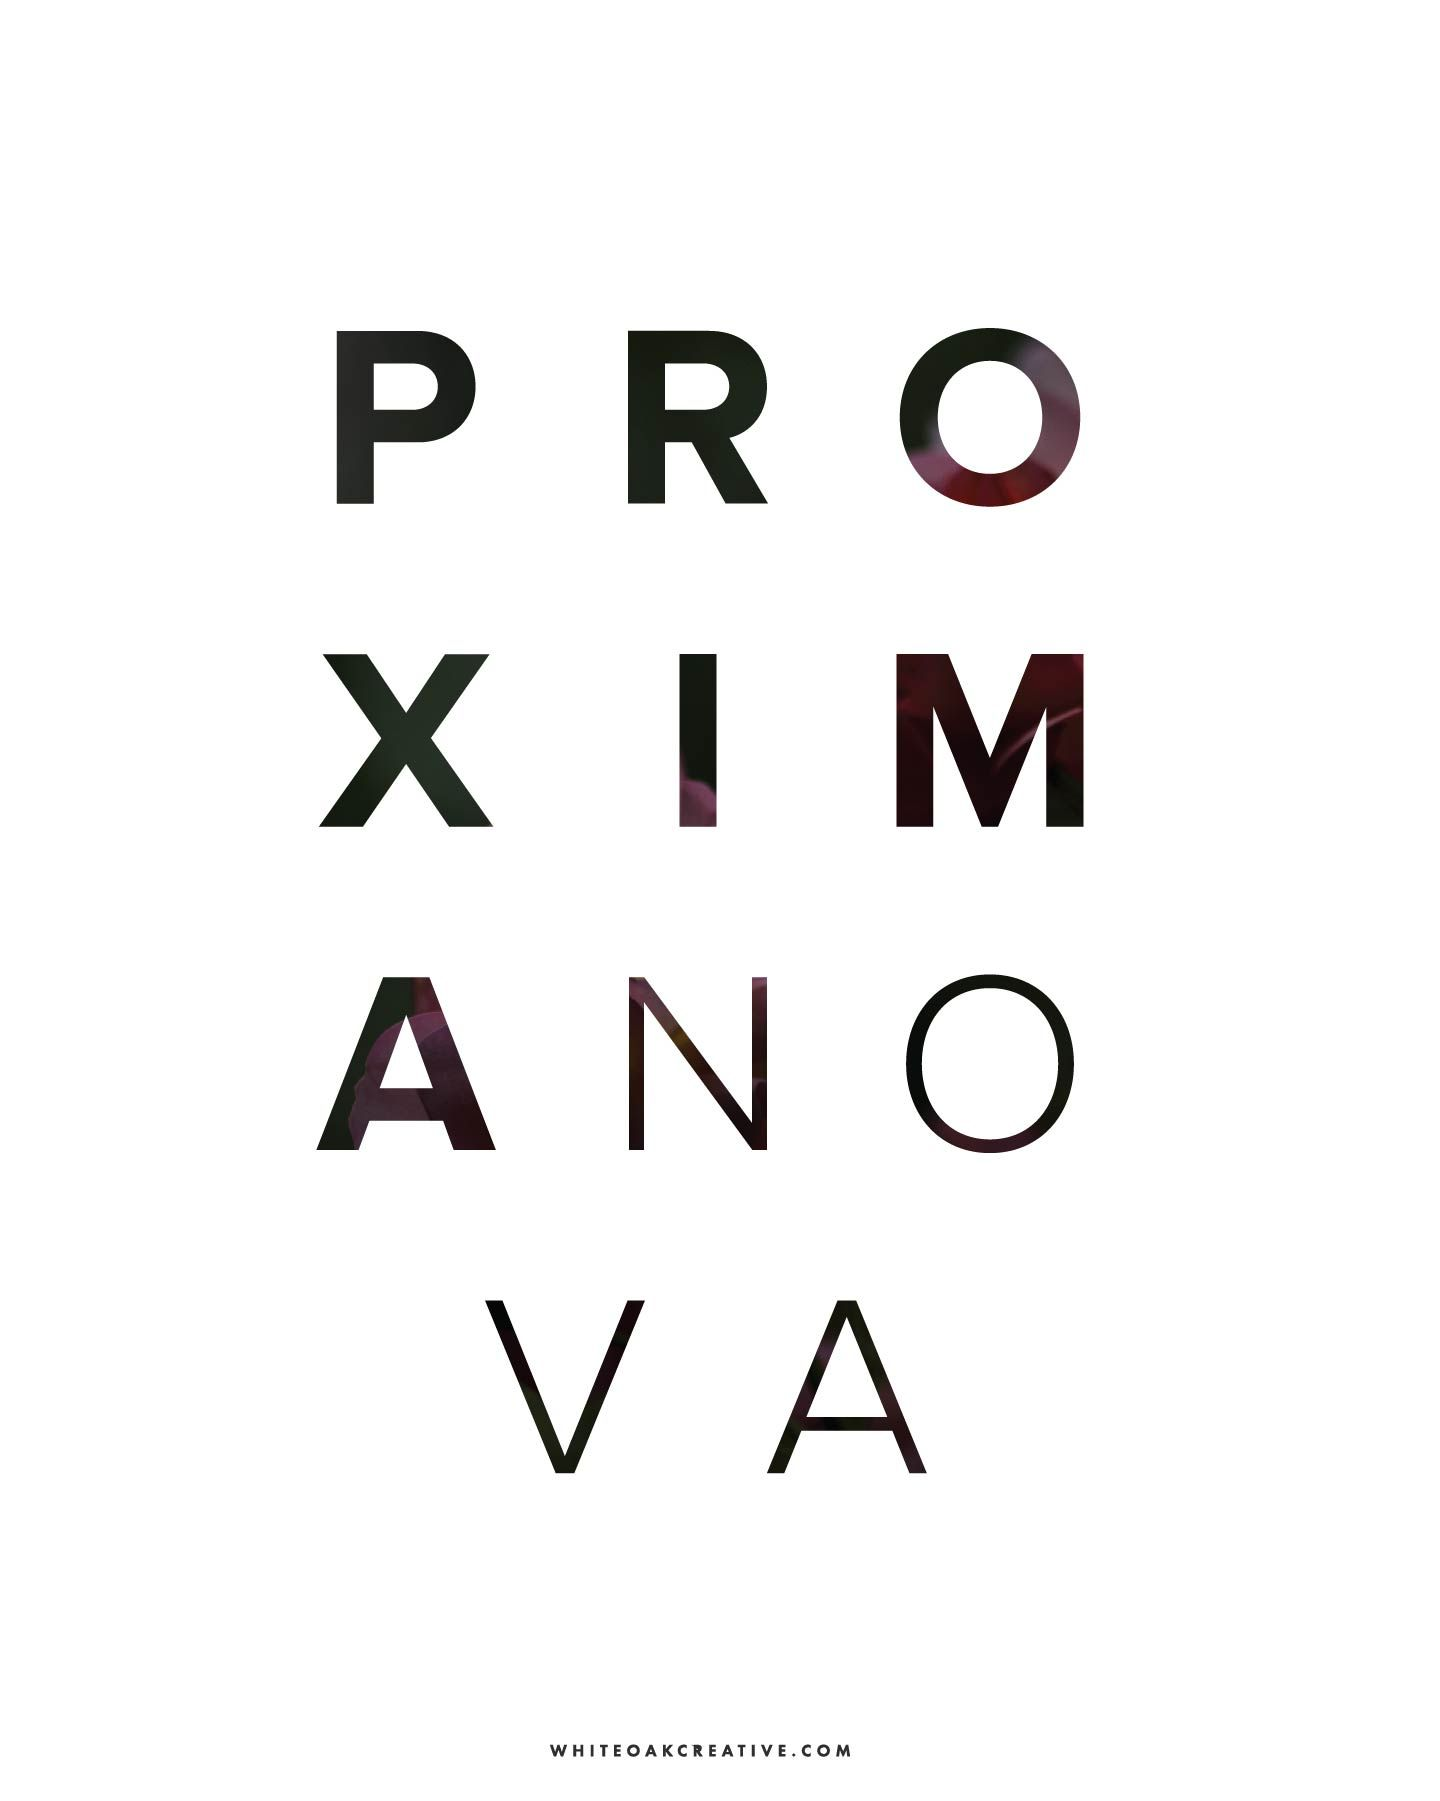 Proxima Nova Might Be One Of My Favorite Fonts To Use In Body Copy On Websites For Its Sharp Custom Blog Design Logo Design Inspiration Typography Inspiration